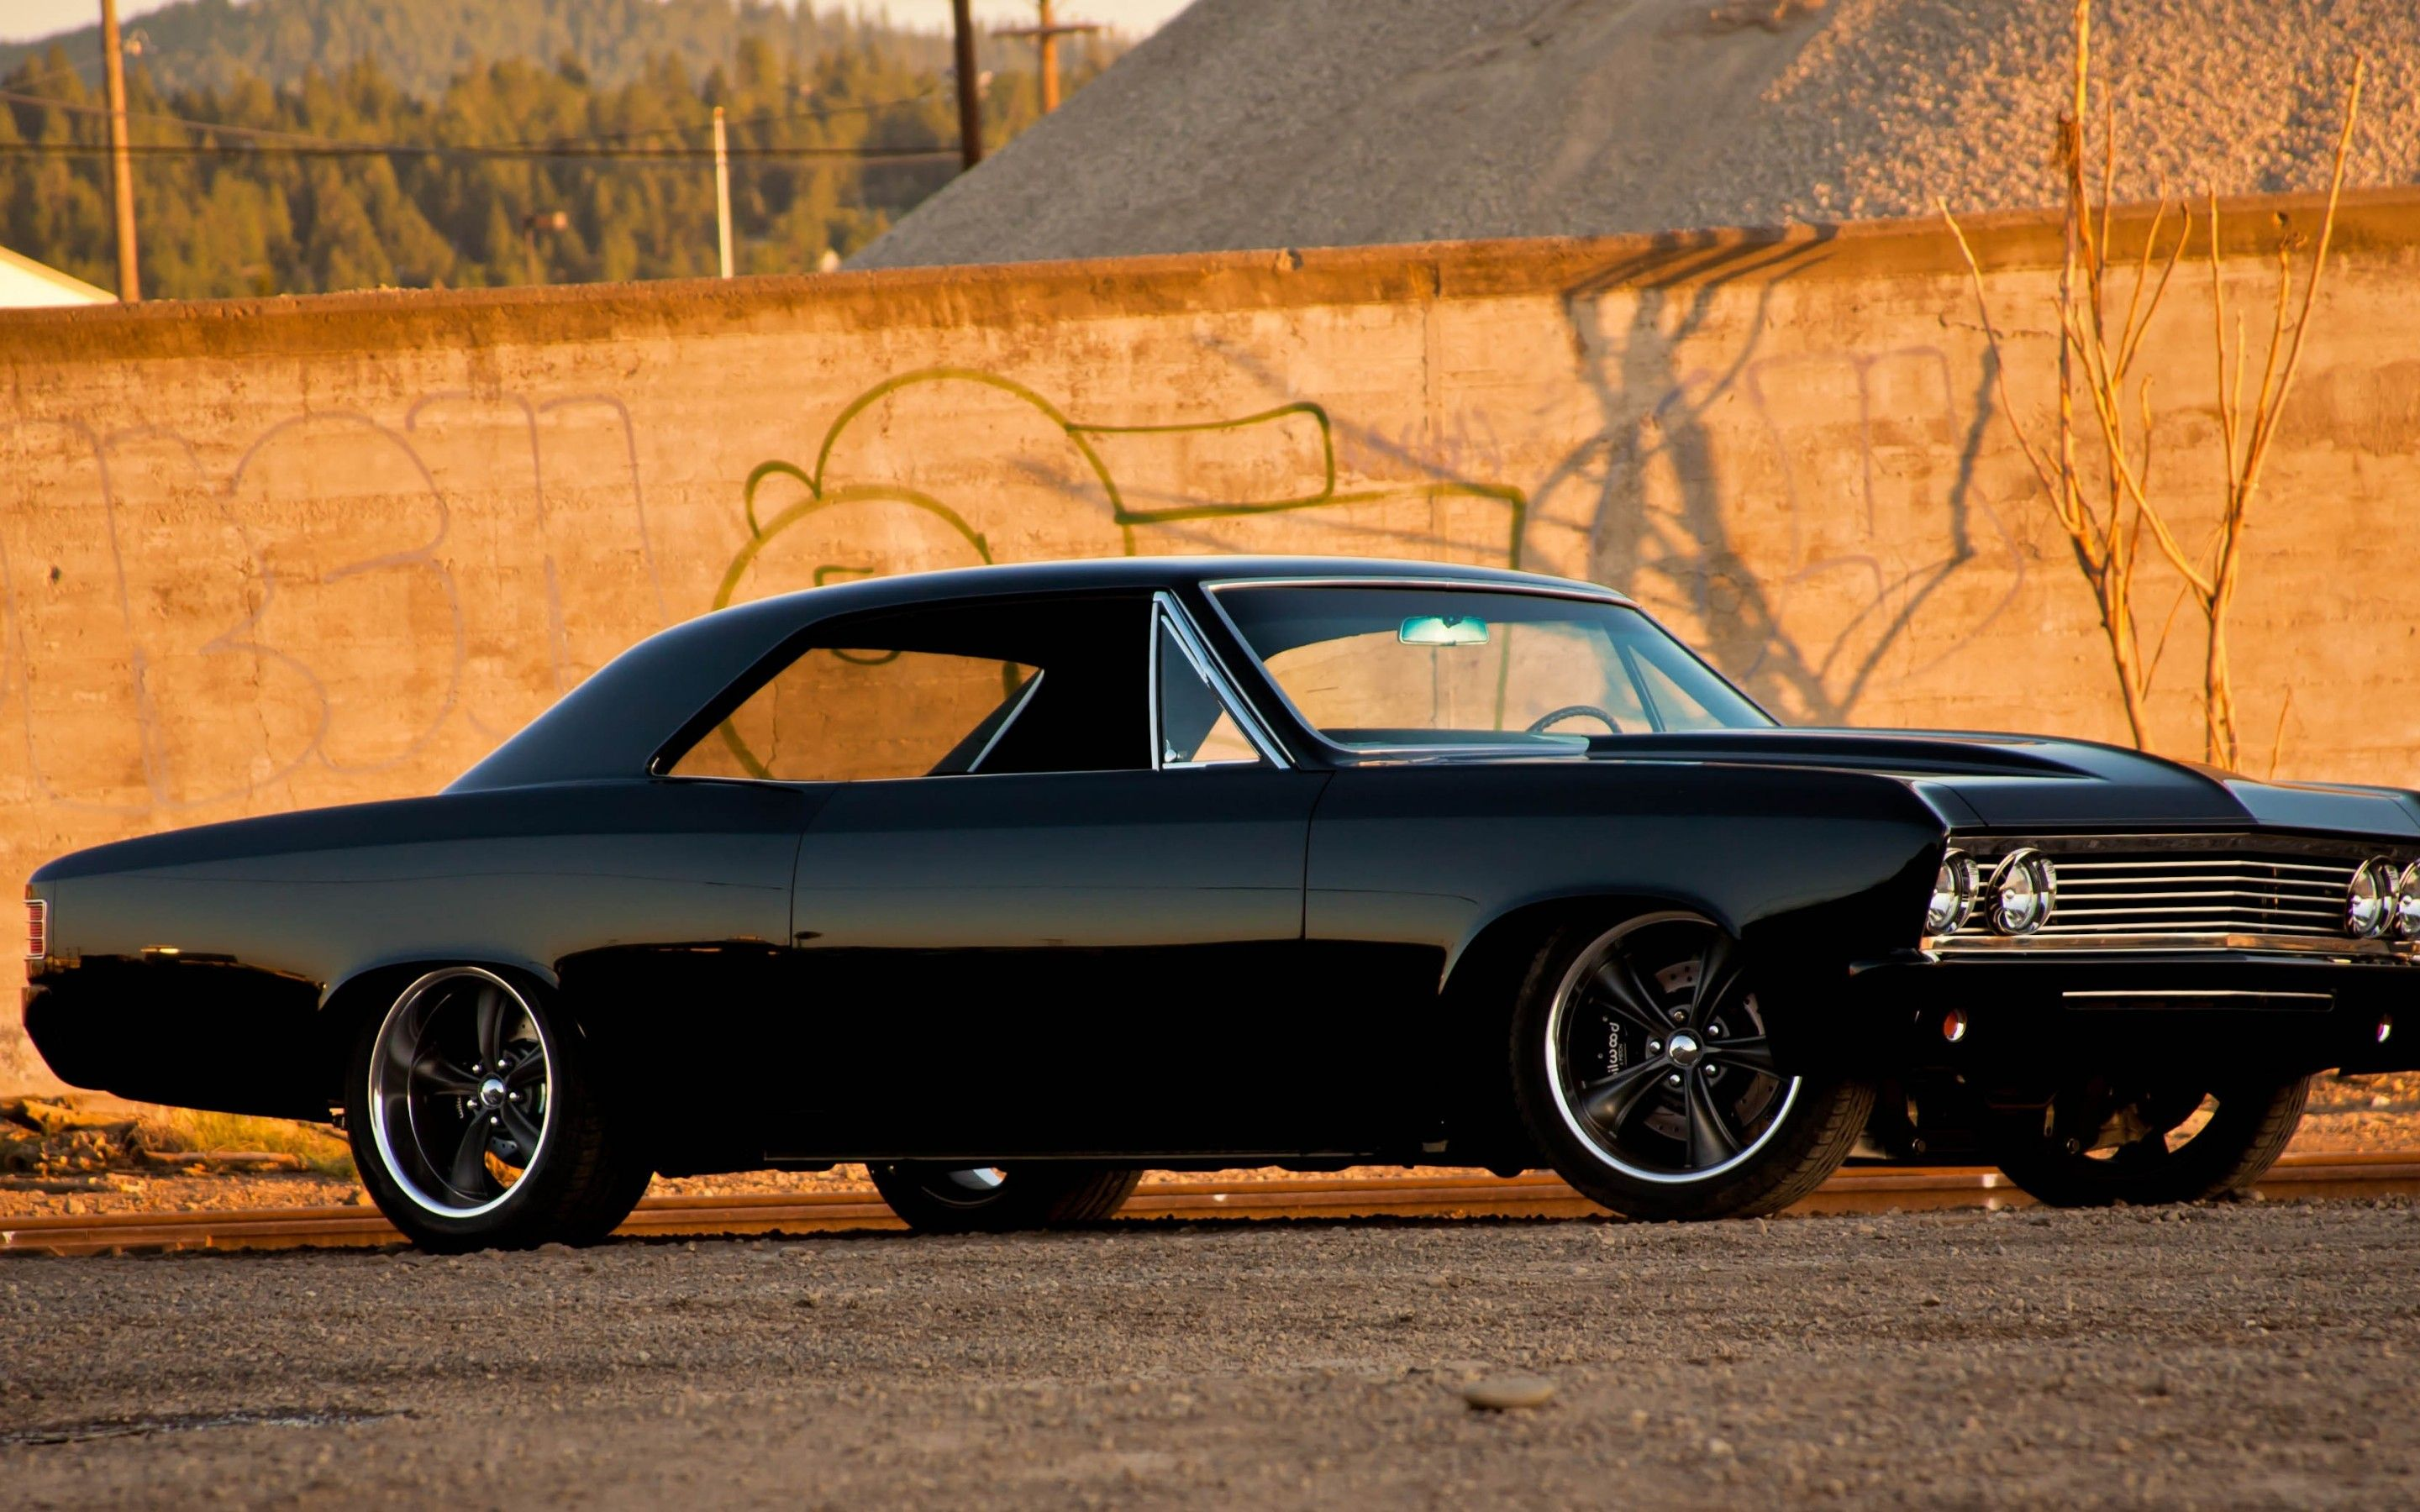 Chevrolet Chevelle Ss Vehicles Cars Auto Retro Classic Muscle